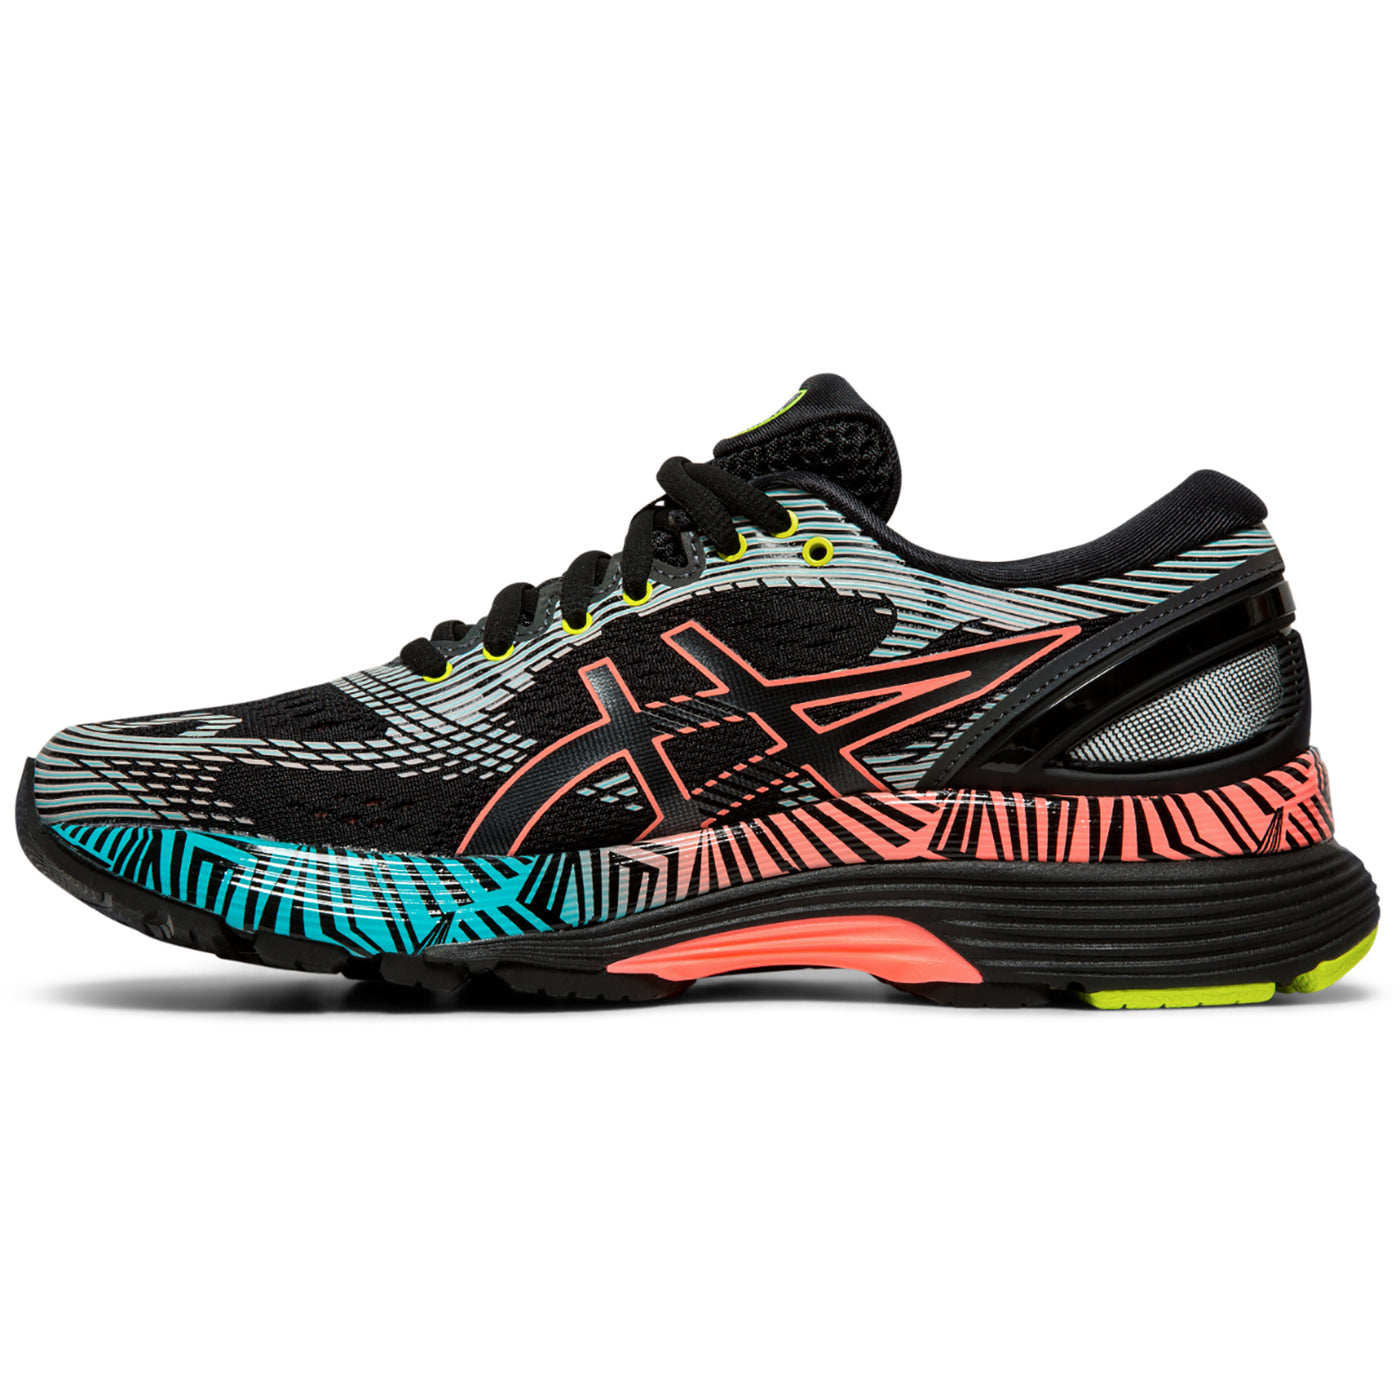 Women's Gel Nimbus 21 Lite Show Running Shoe BlackSun